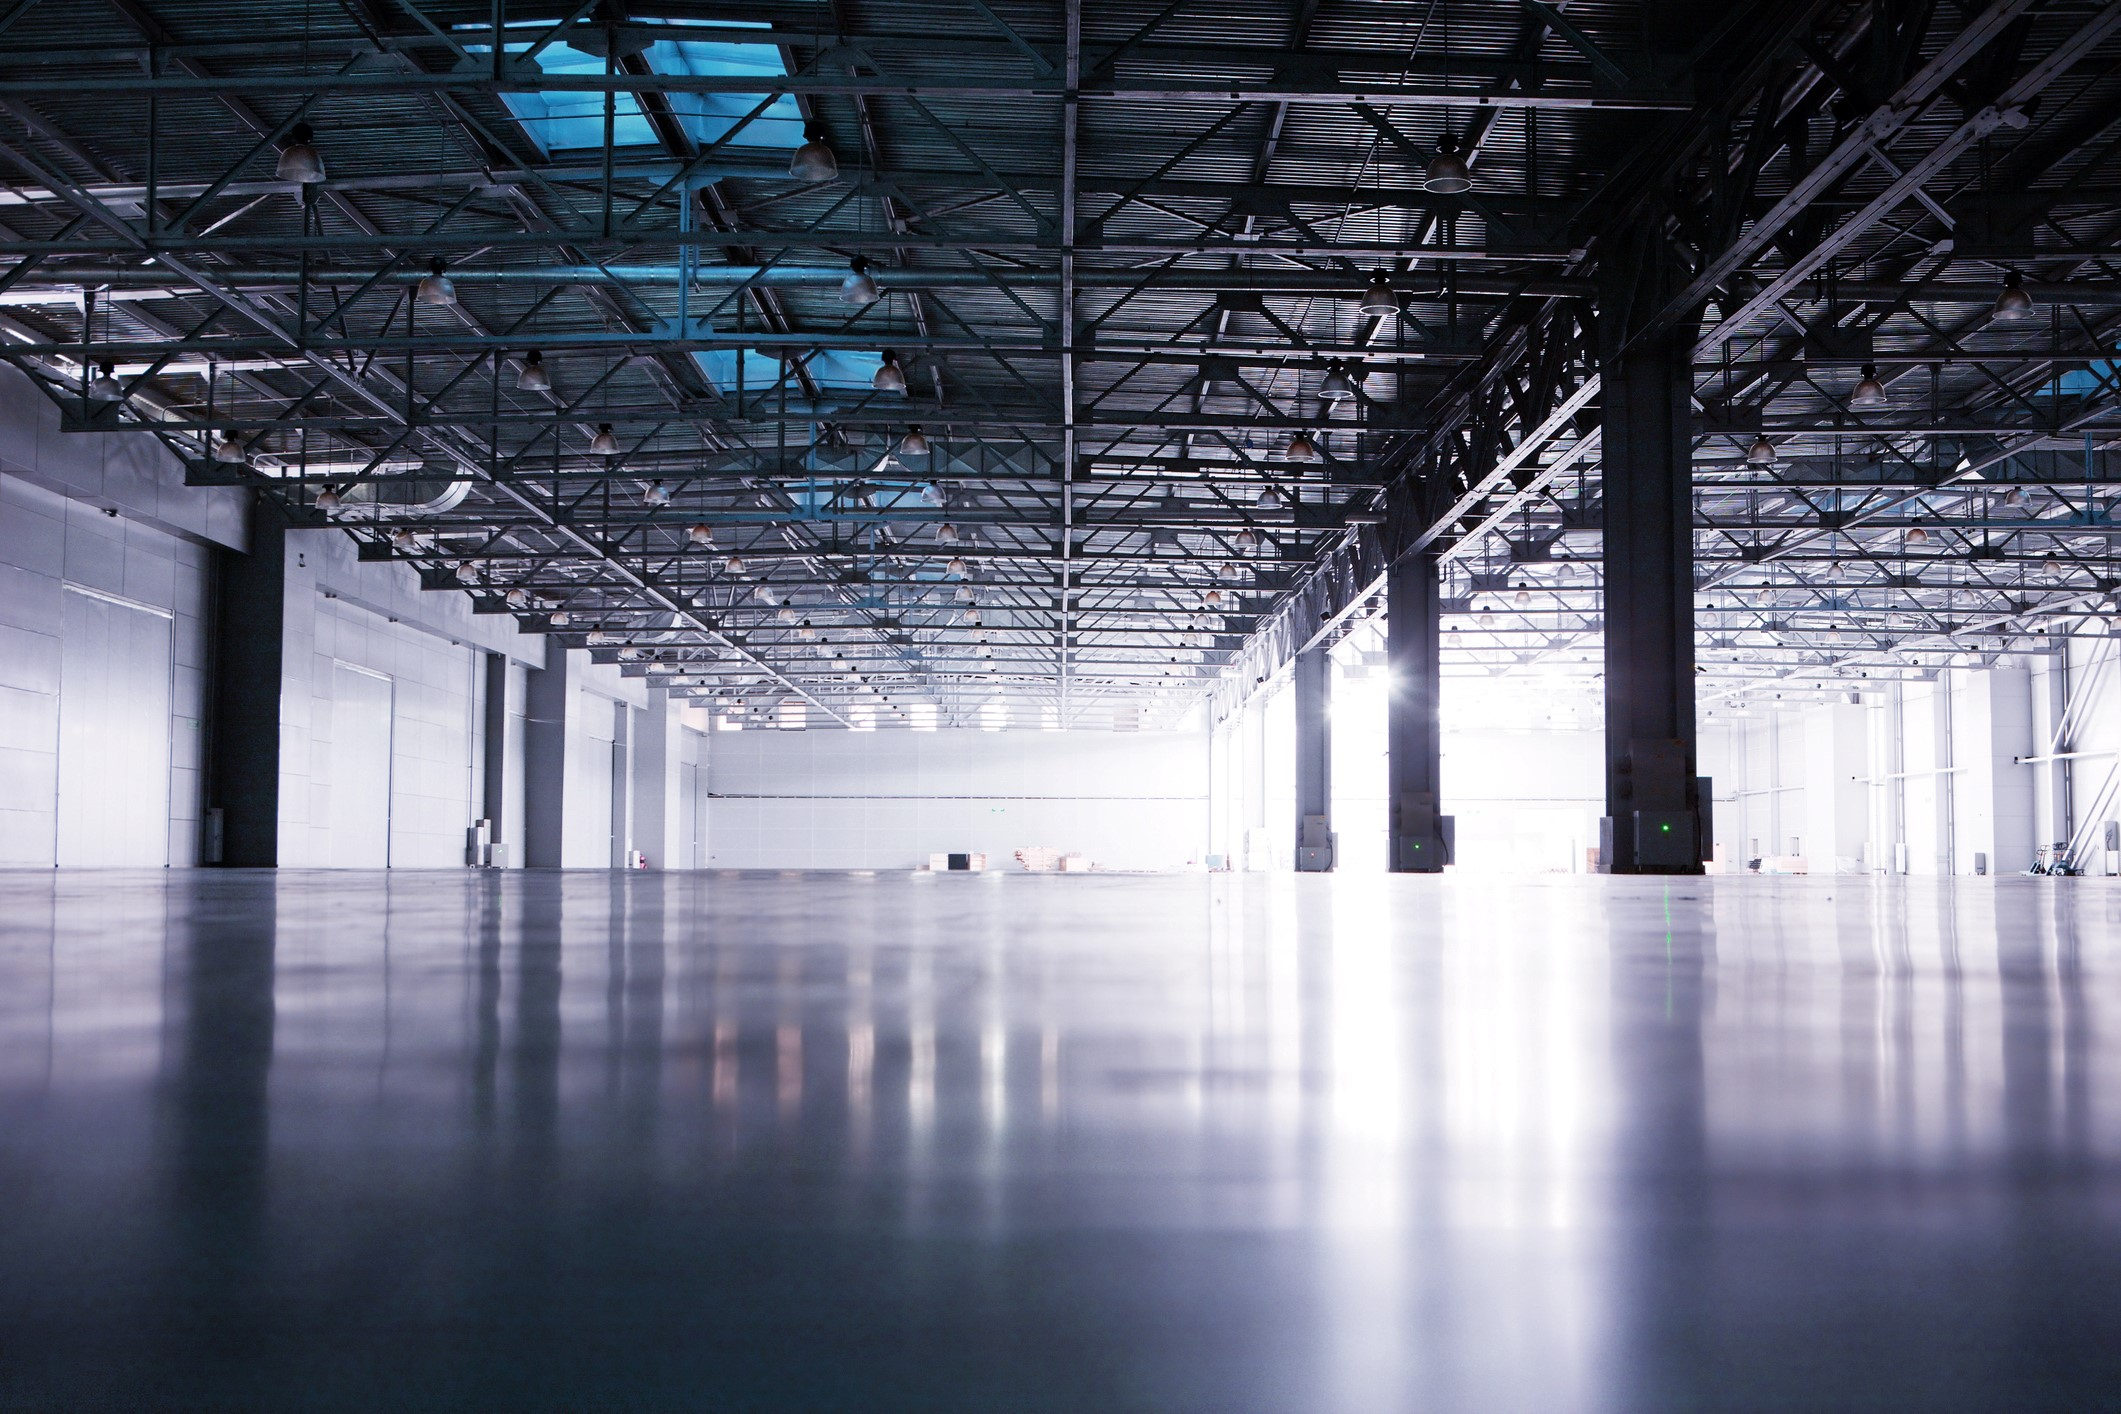 Smart Cooling - 45,000 sq. ft. of smart cold rooms paving the way for a more sustainable future